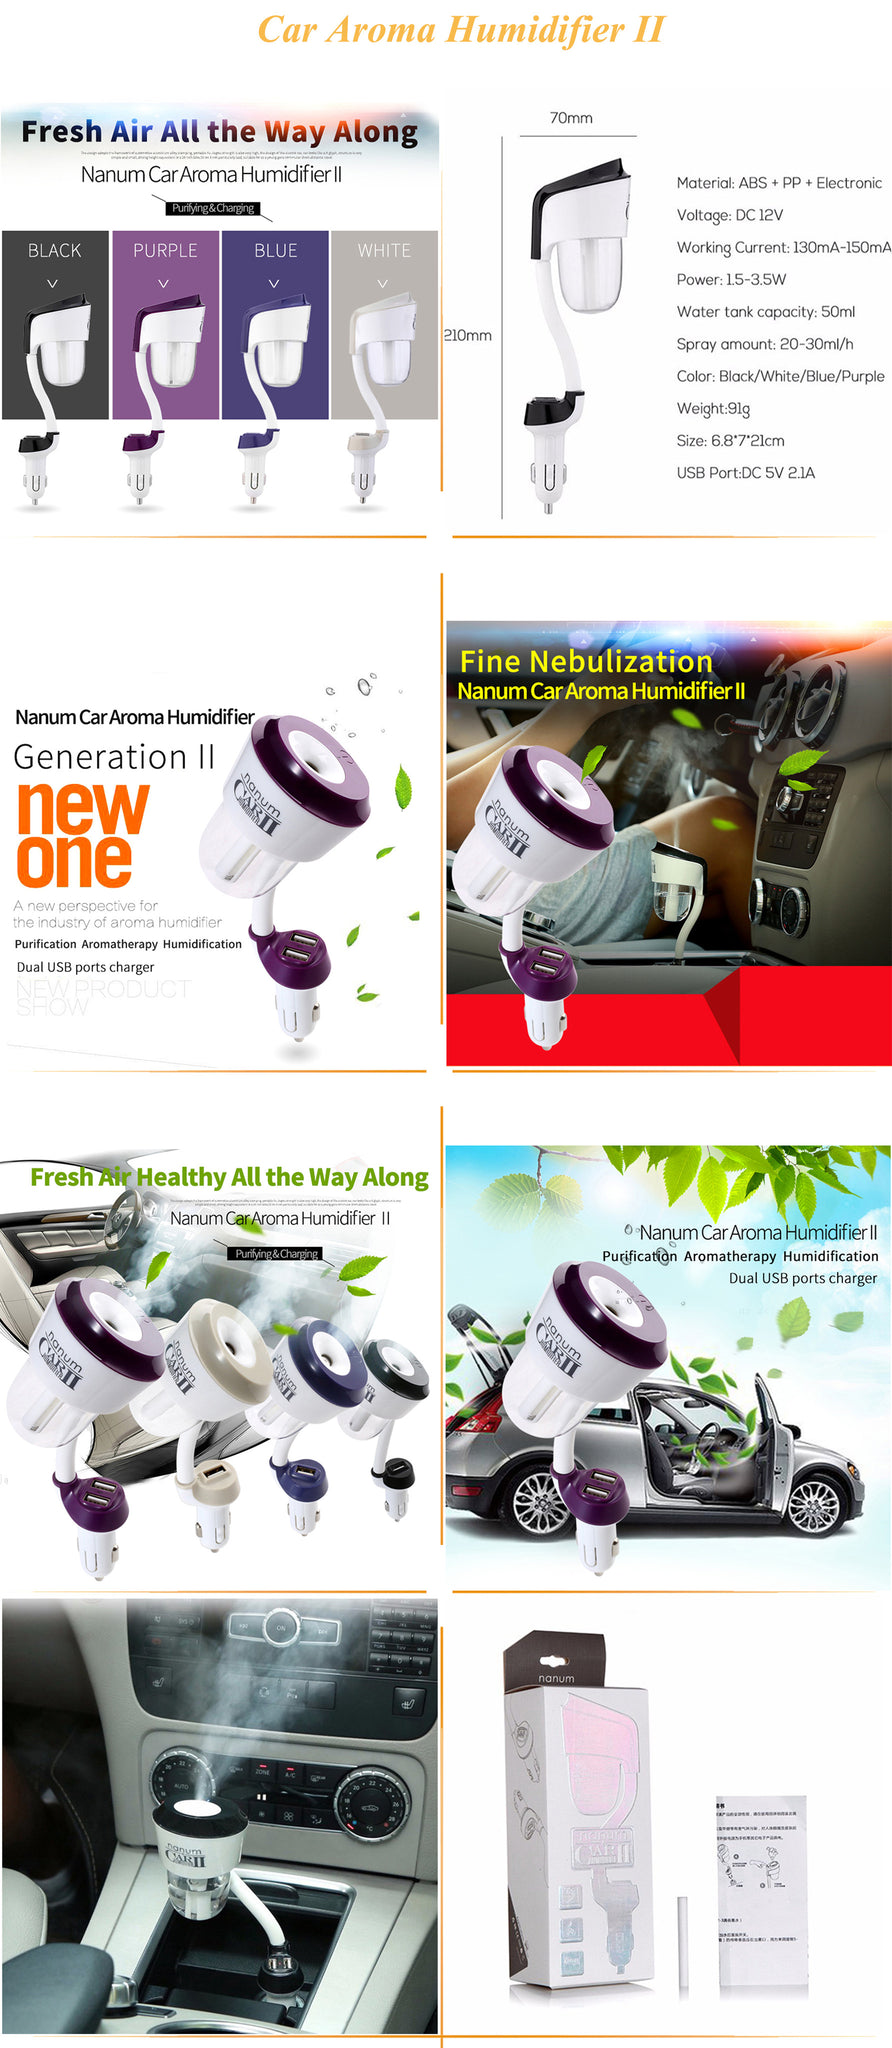 Car Humidifier Essential Oil Diffuser Dual Usb Charger Ultrasonic Parfum Nanum When The Product Is Not Being Used Please Detach It Pour Out All Liquid And Store In A Cool Dry Place